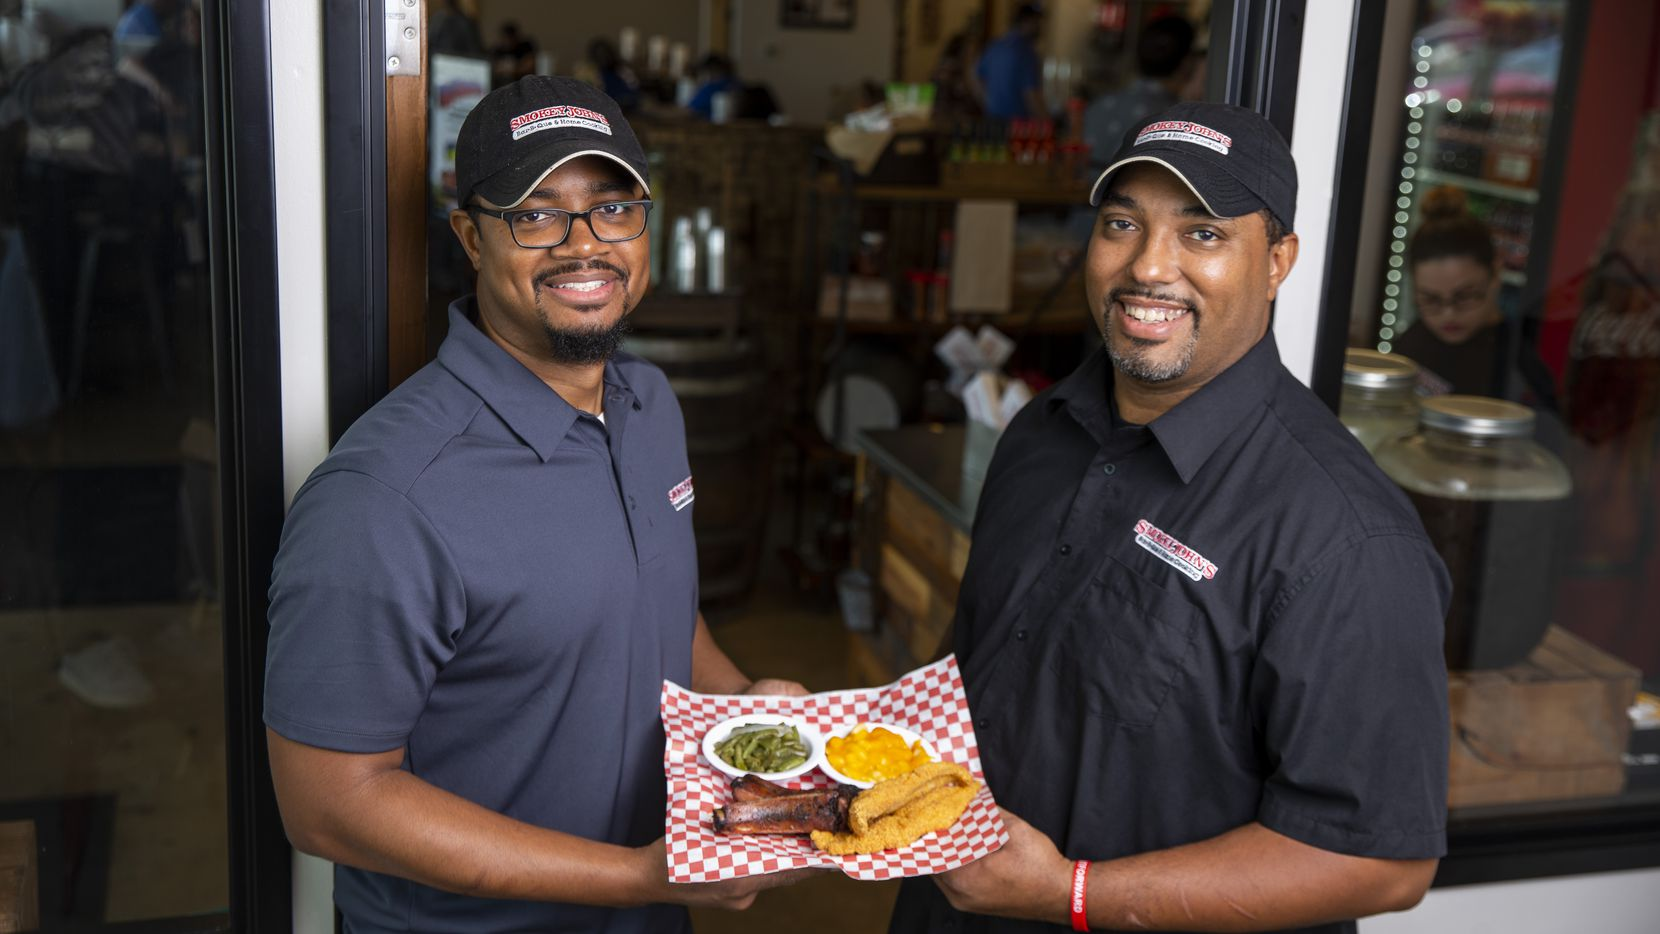 Brent (left) and Juan Reaves hold The Steve White, which is two catfish fillets, two ribs, green beans and mac and cheese, priced at $14.95 at Smokey John's Bar-B-Que and Home Cooking in Dallas on June 26, 2019. (Shaban Athuman/Staff Photographer)